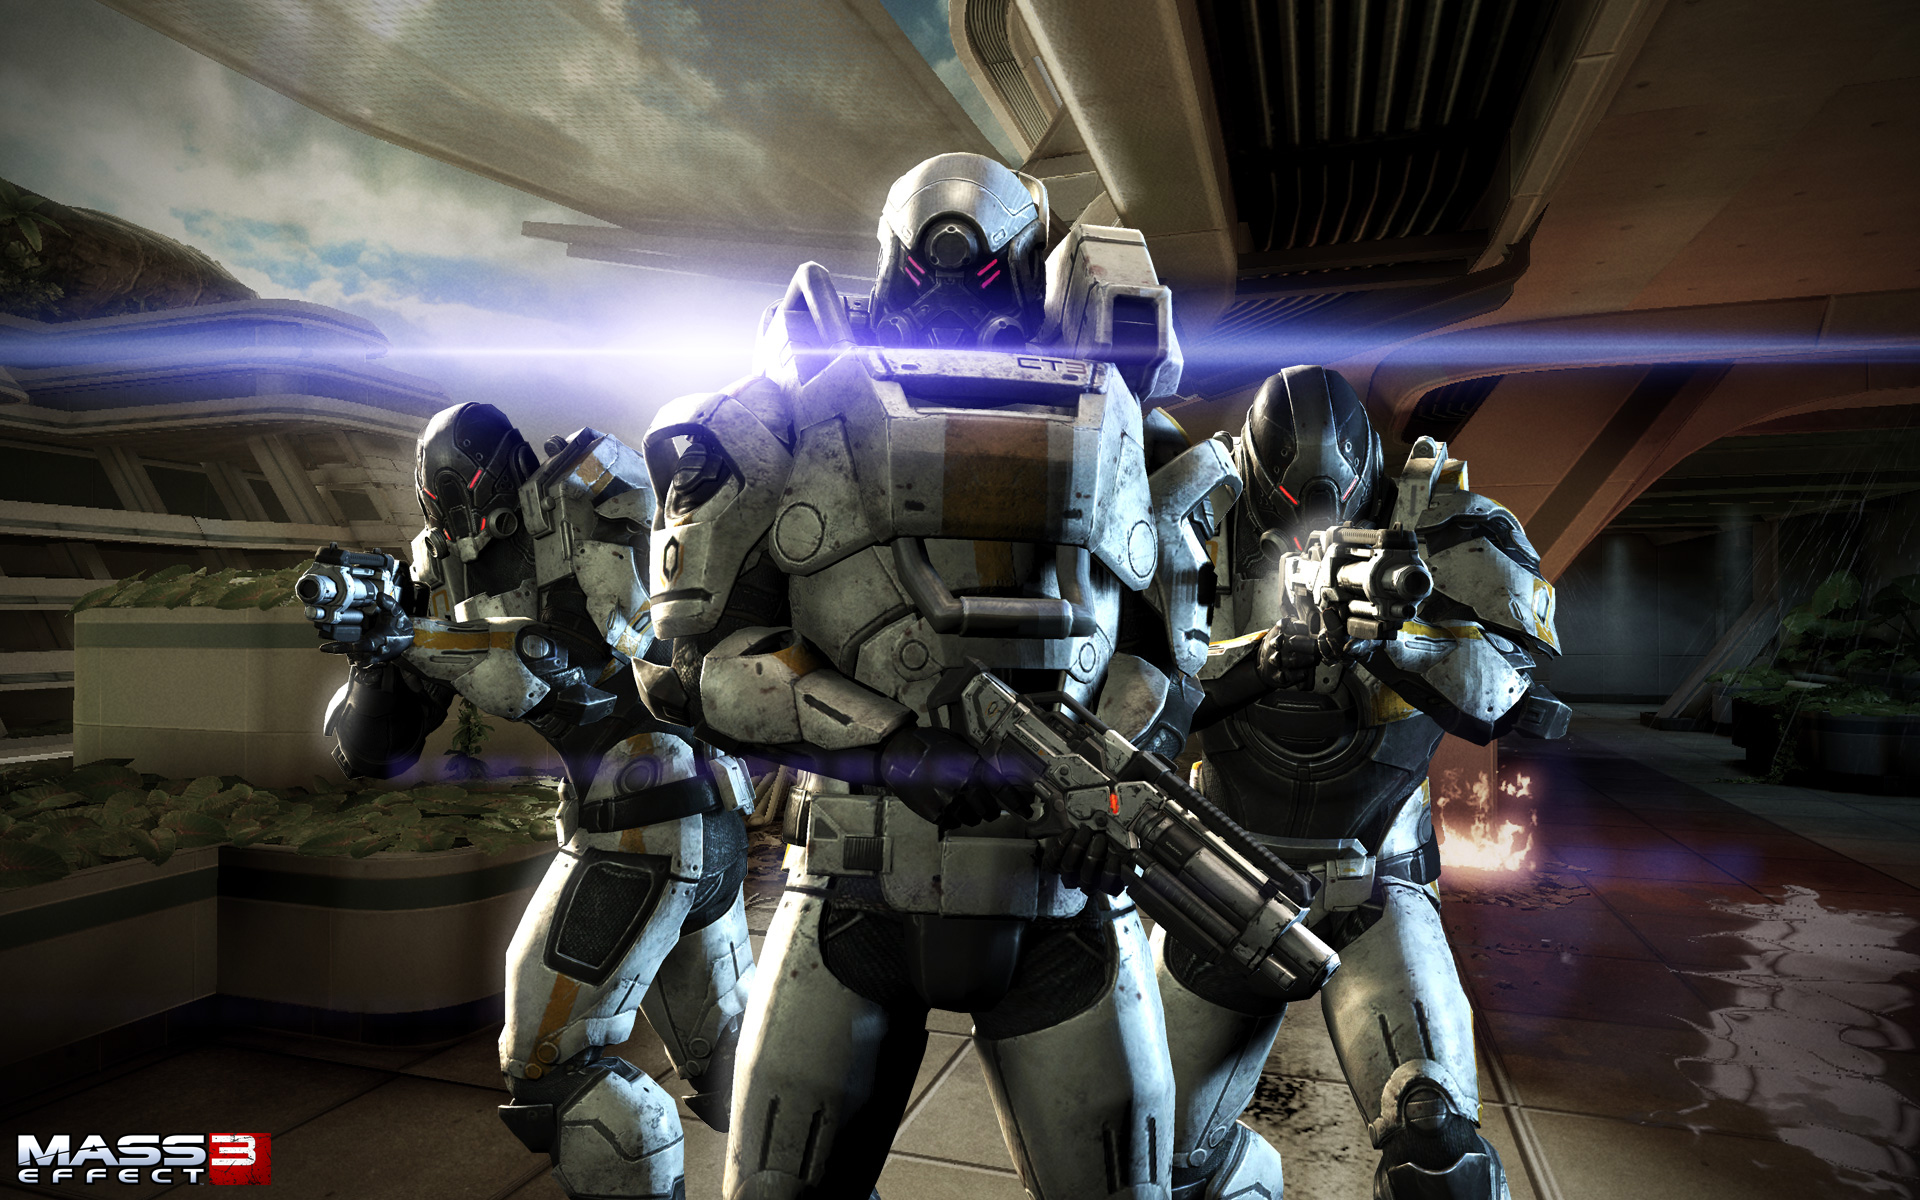 Cerberus Mass Effect 3